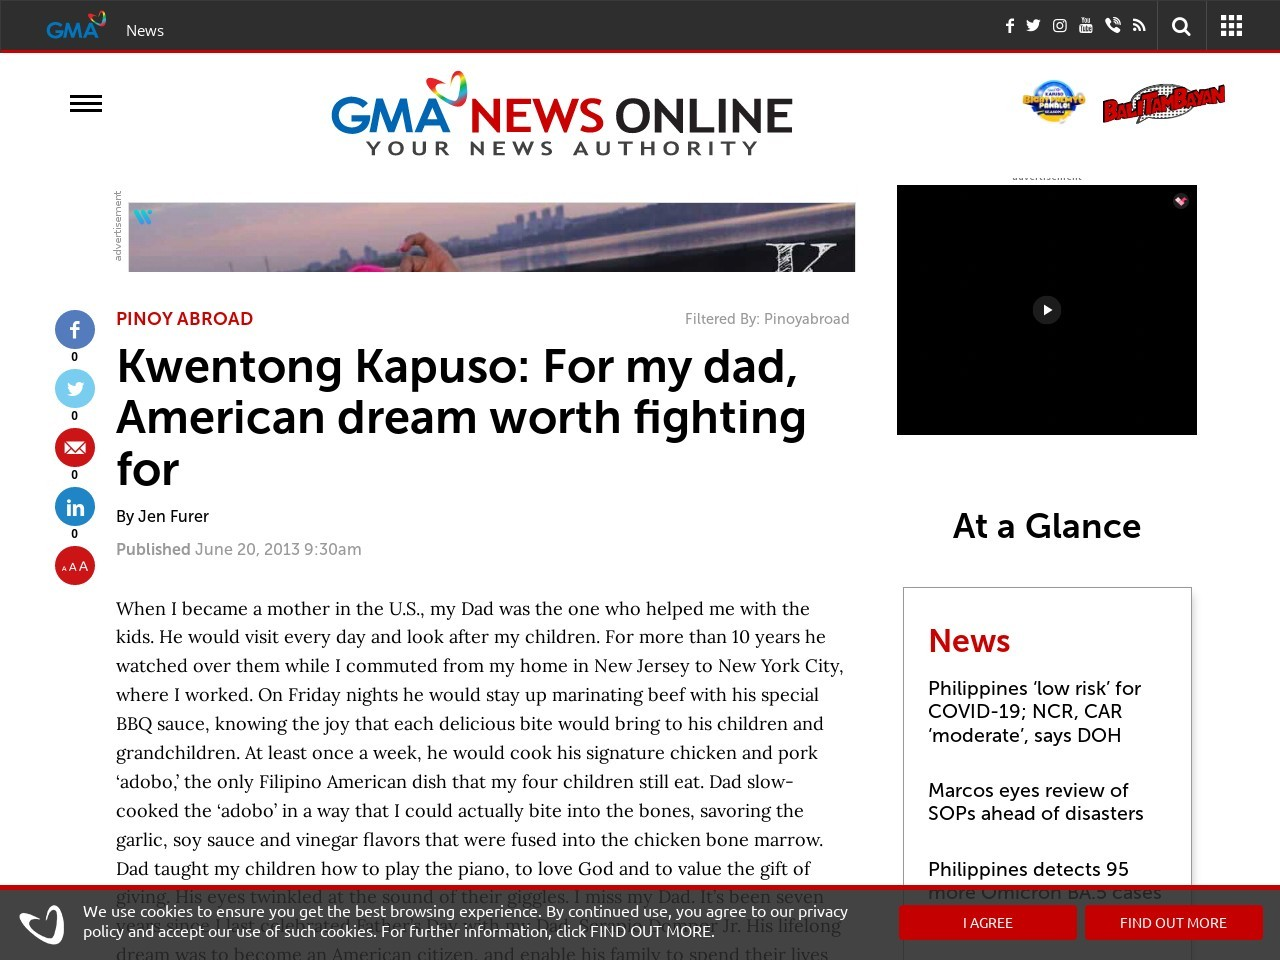 Kwentong Kapuso: For my dad, American dream worth fighting for